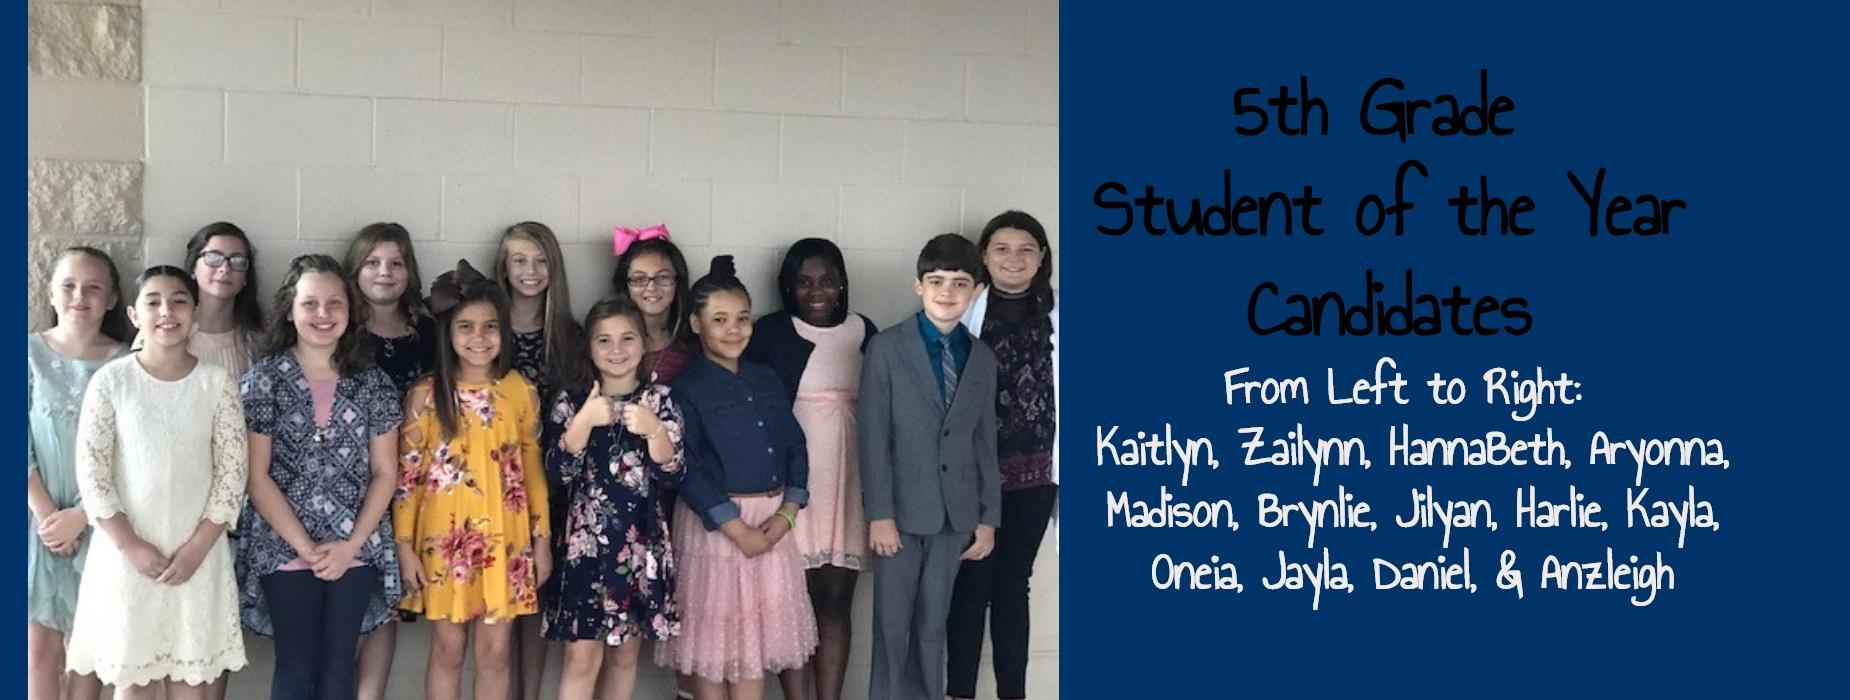 5th grade student of the year candidates